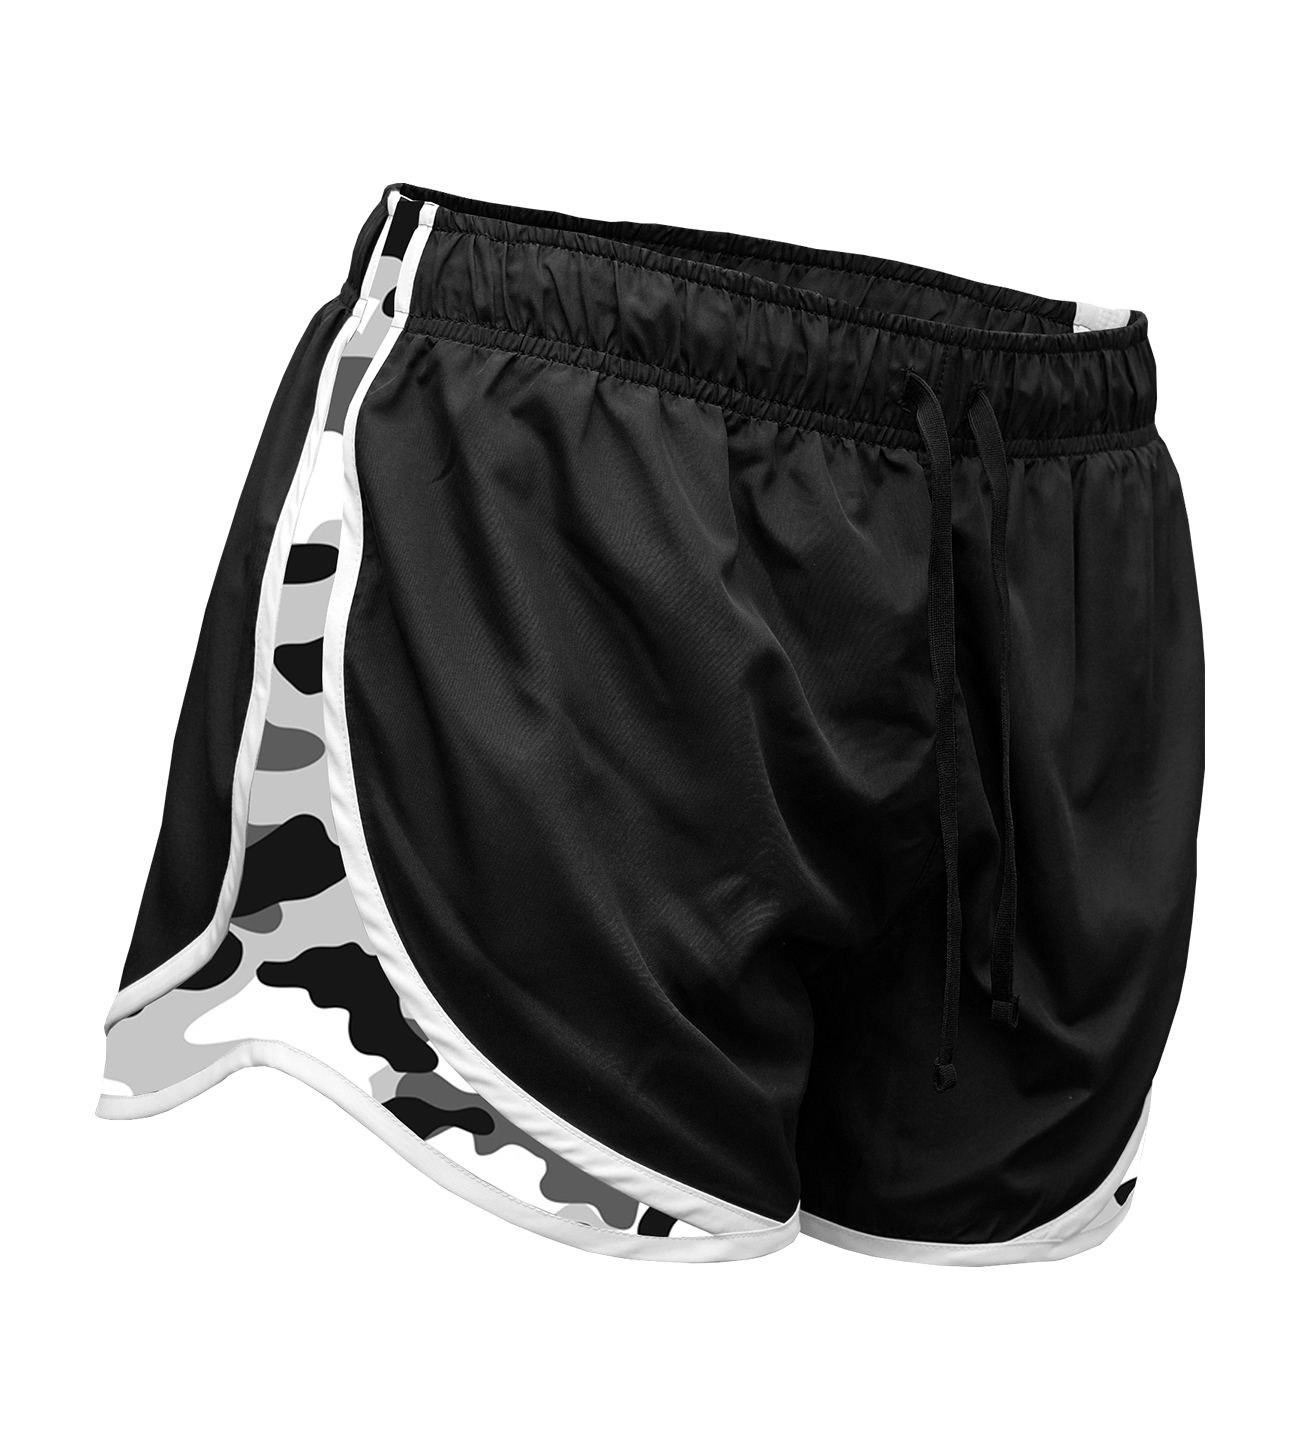 BAW Athletic Wear S701Y - Girls Running Short